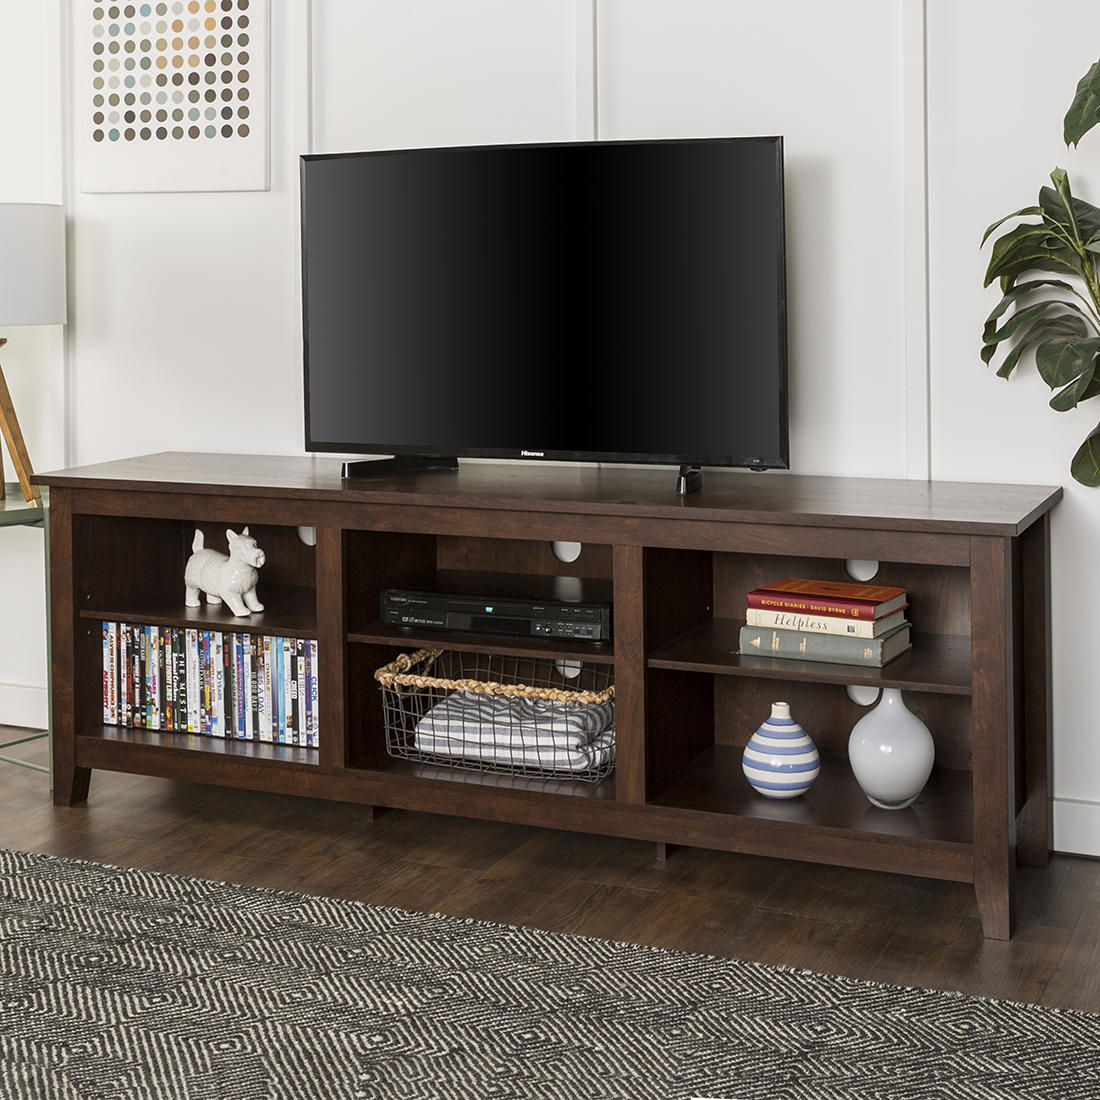 W Trends 70 Wood Media Tv Stand Storage Console For Tvs Up To 70 Traditional Brown Bjs Wholesale Club